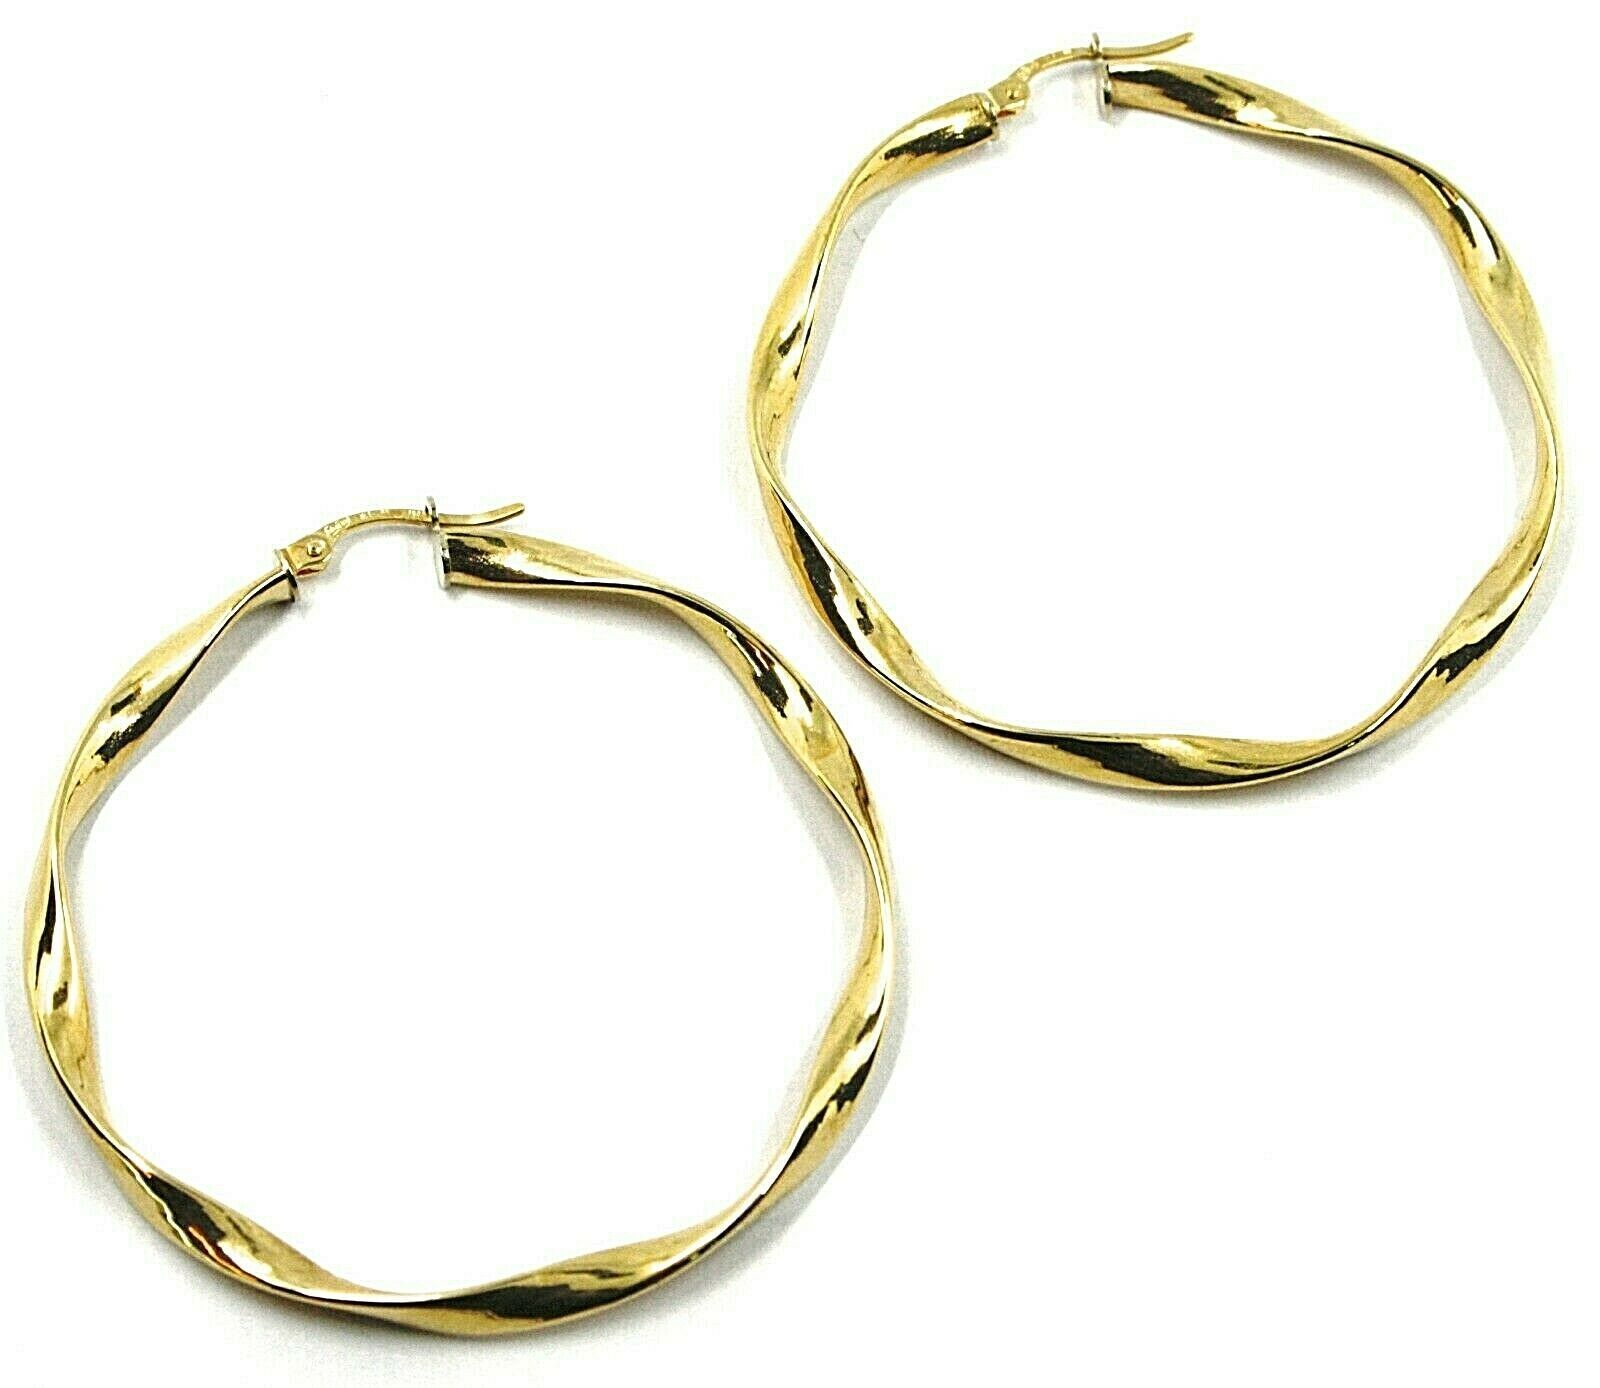 18K YELLOW GOLD CIRCLE HOOPS PENDANT EARRINGS, 4.7 cm x 4 mm BRAIDED, TWISTED